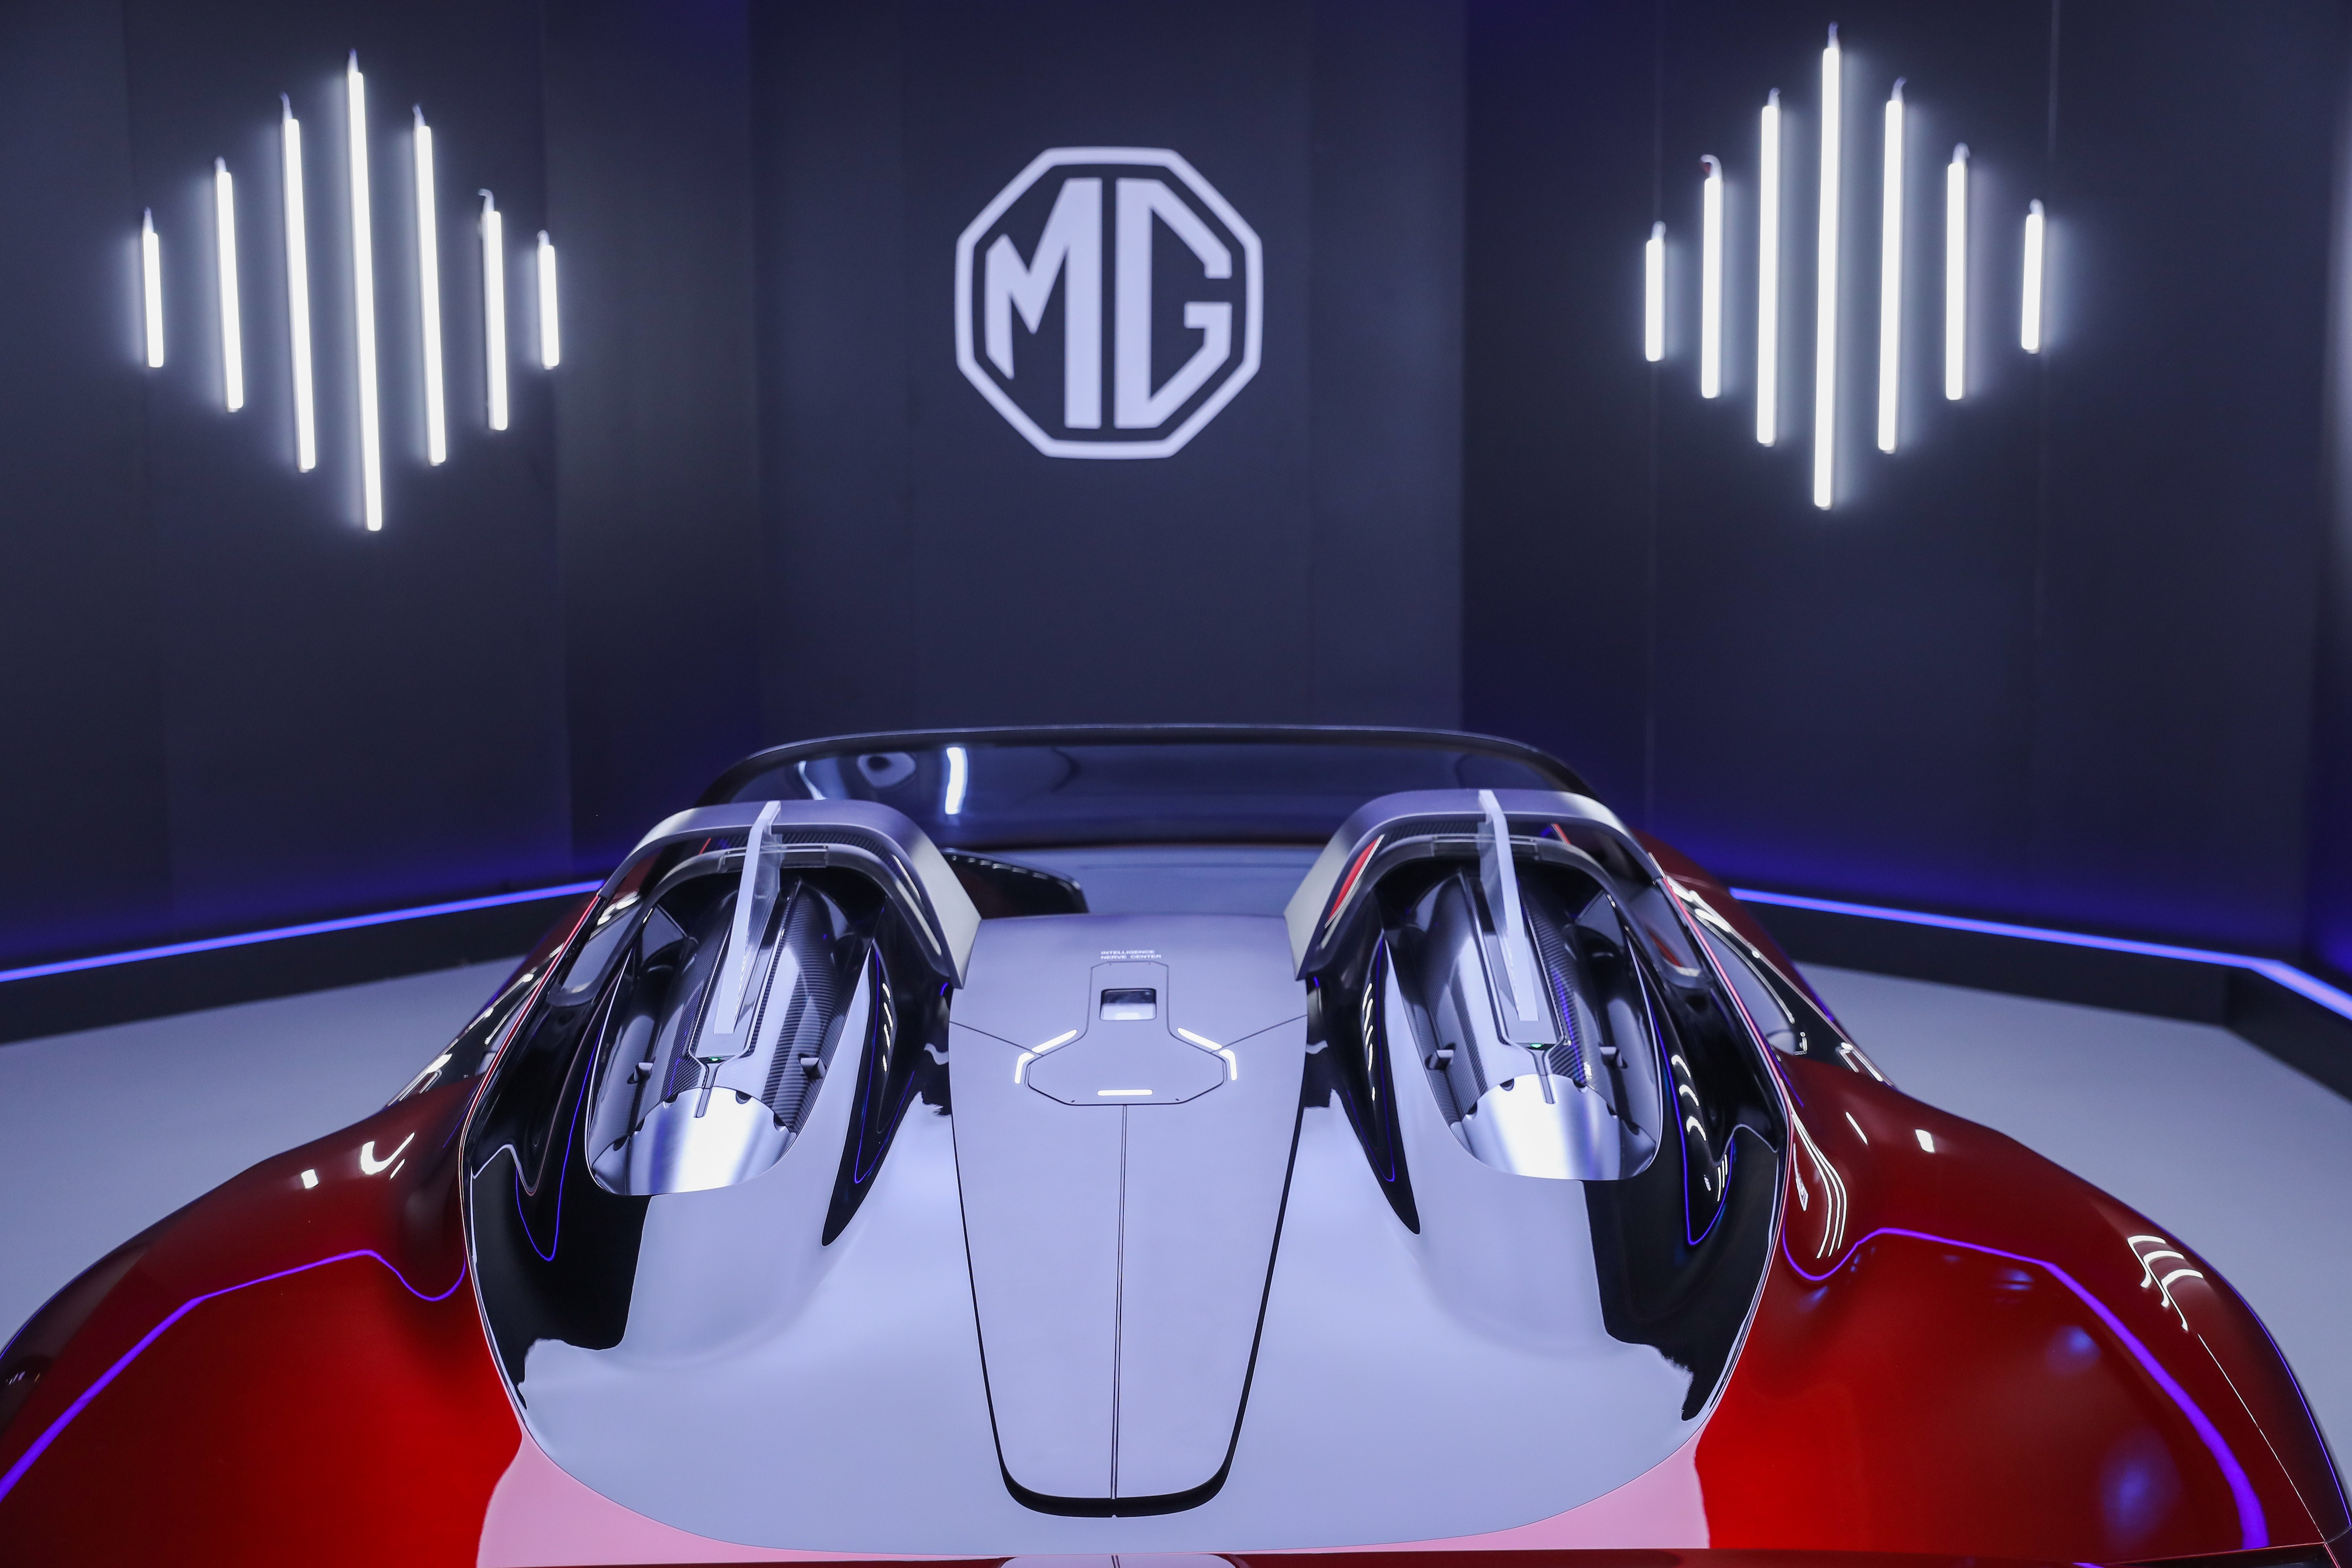 The two-door, two-seater electric sports car is expected hit production lines soon this year.